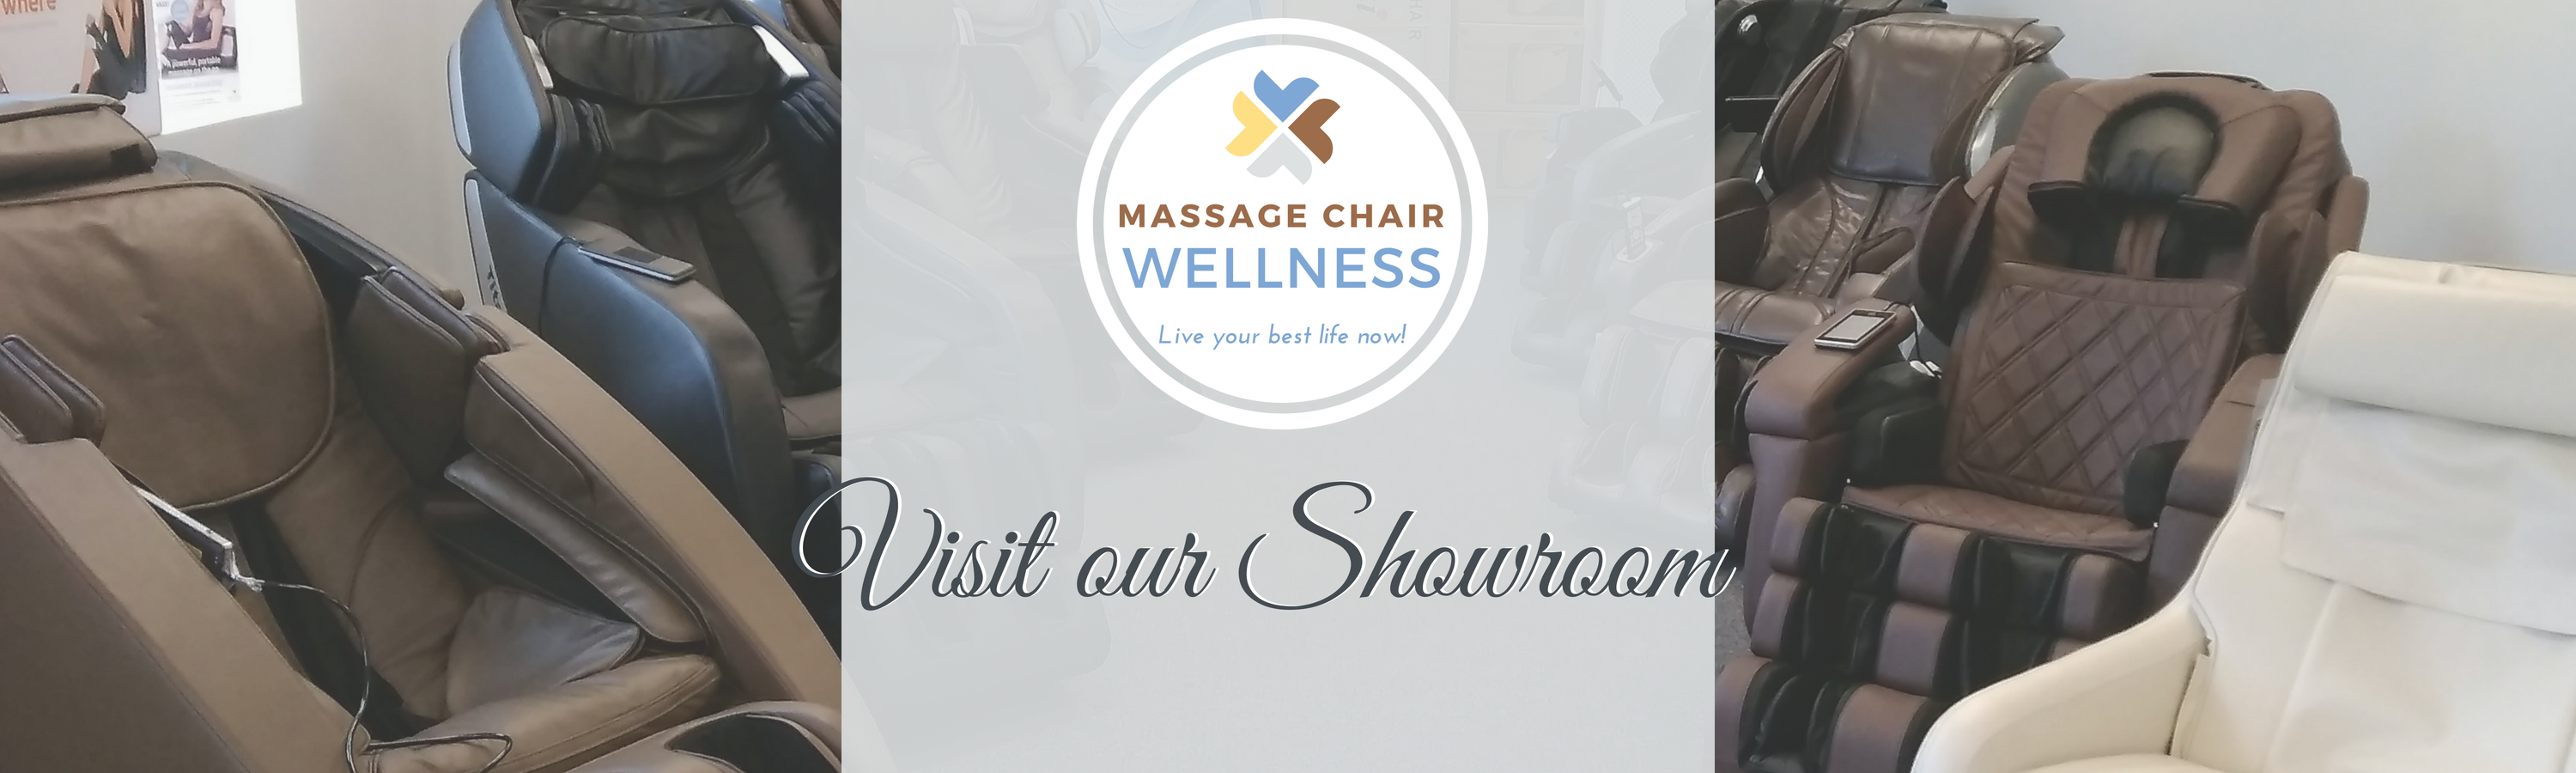 Visit-Our-Massage-Chair-Showroom-2018